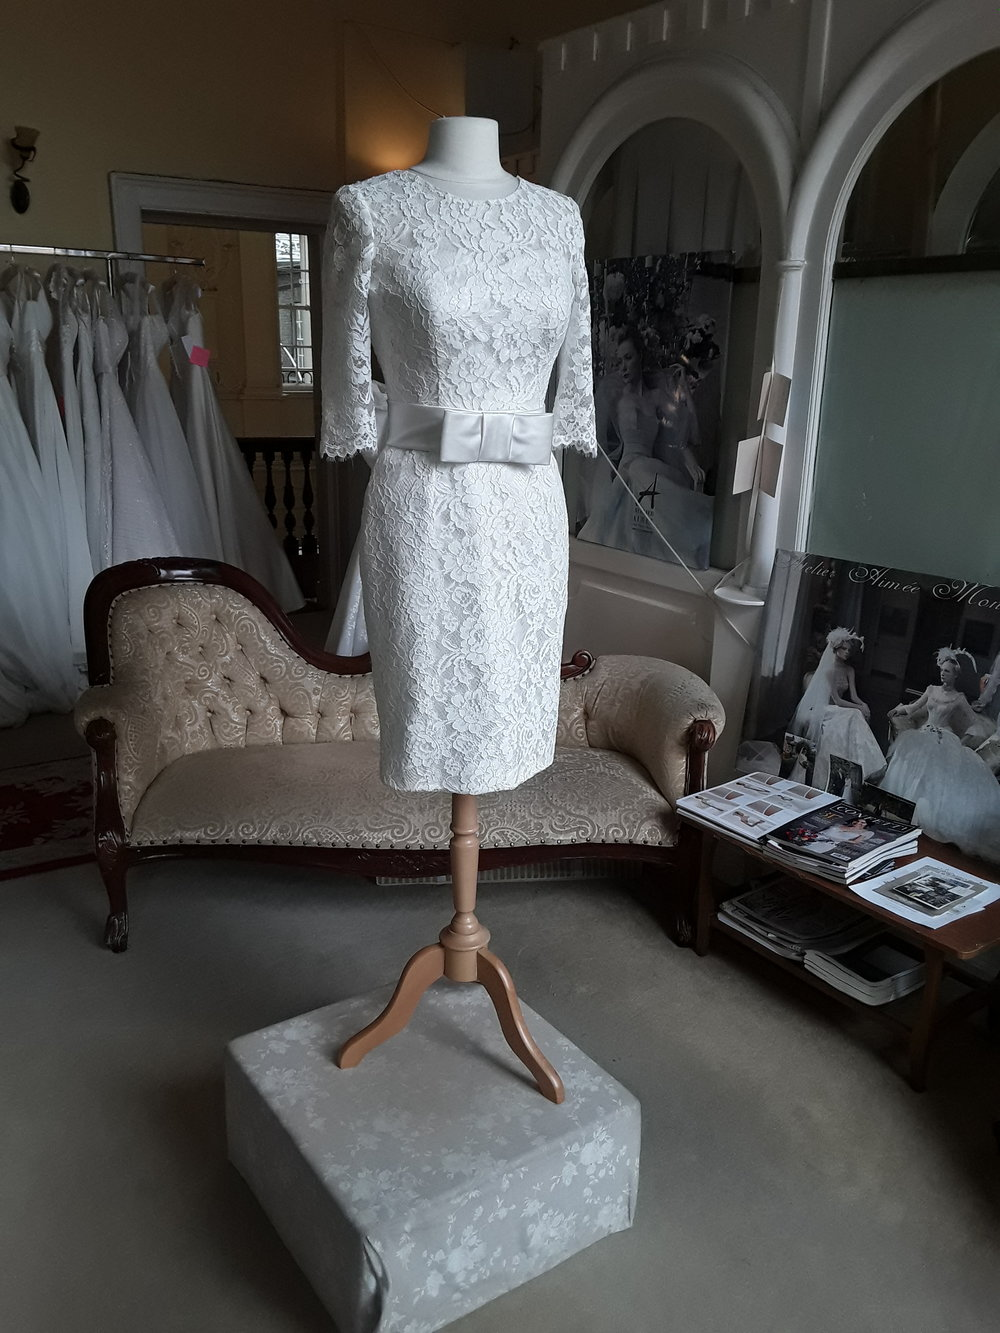 WHITE ROSE - SHORT LACE DRESS  SIZE - 10  COLOUR - IVORY   WAS €785 NOW €495  E117